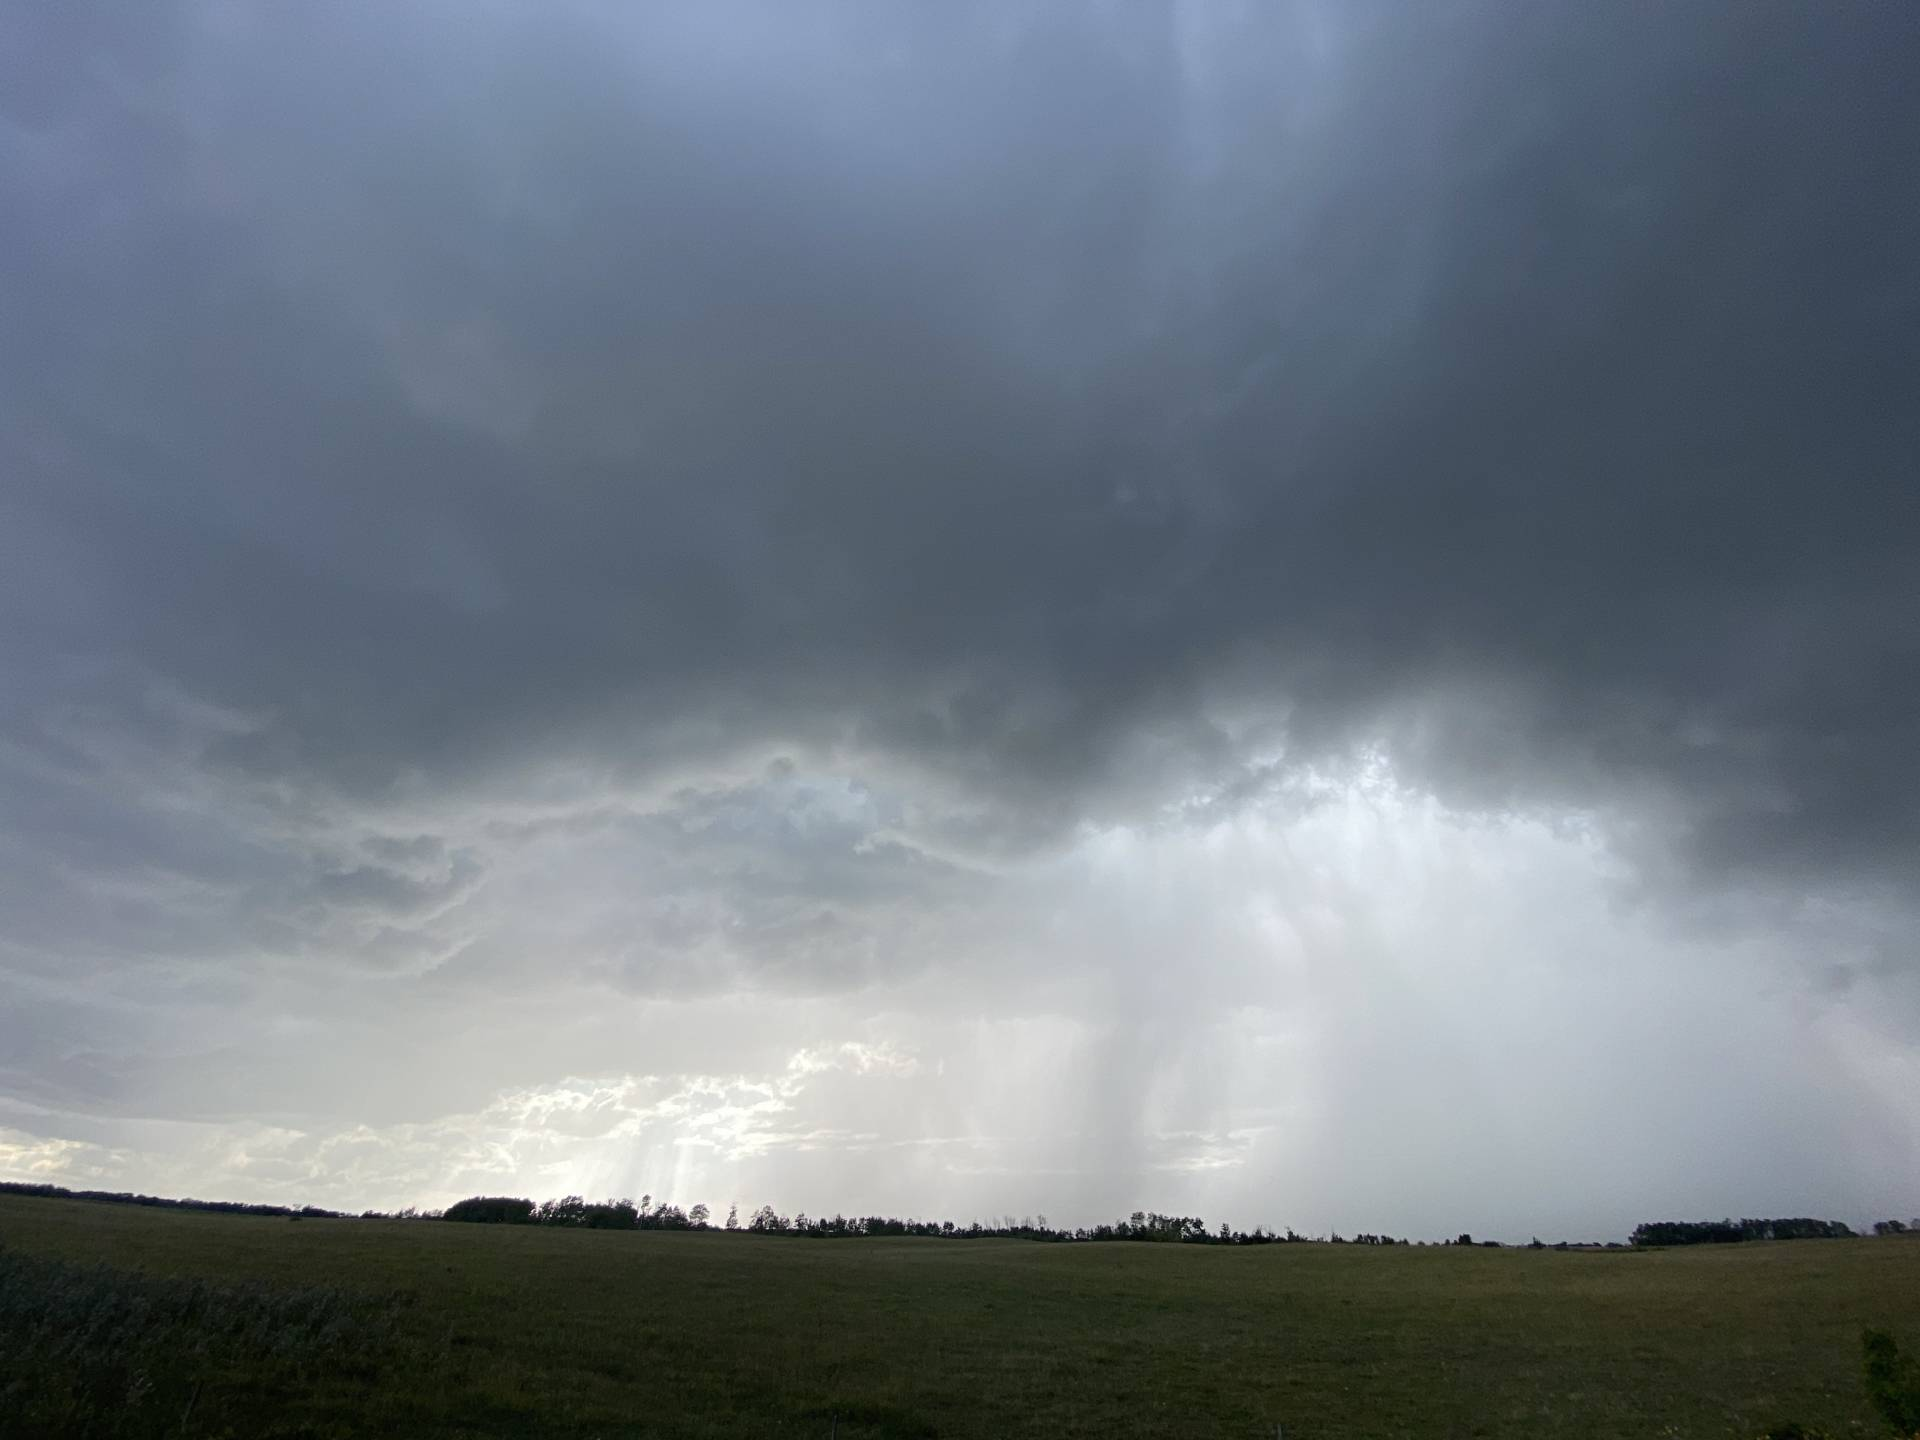 South of Percival Sask. 4:55 pm.